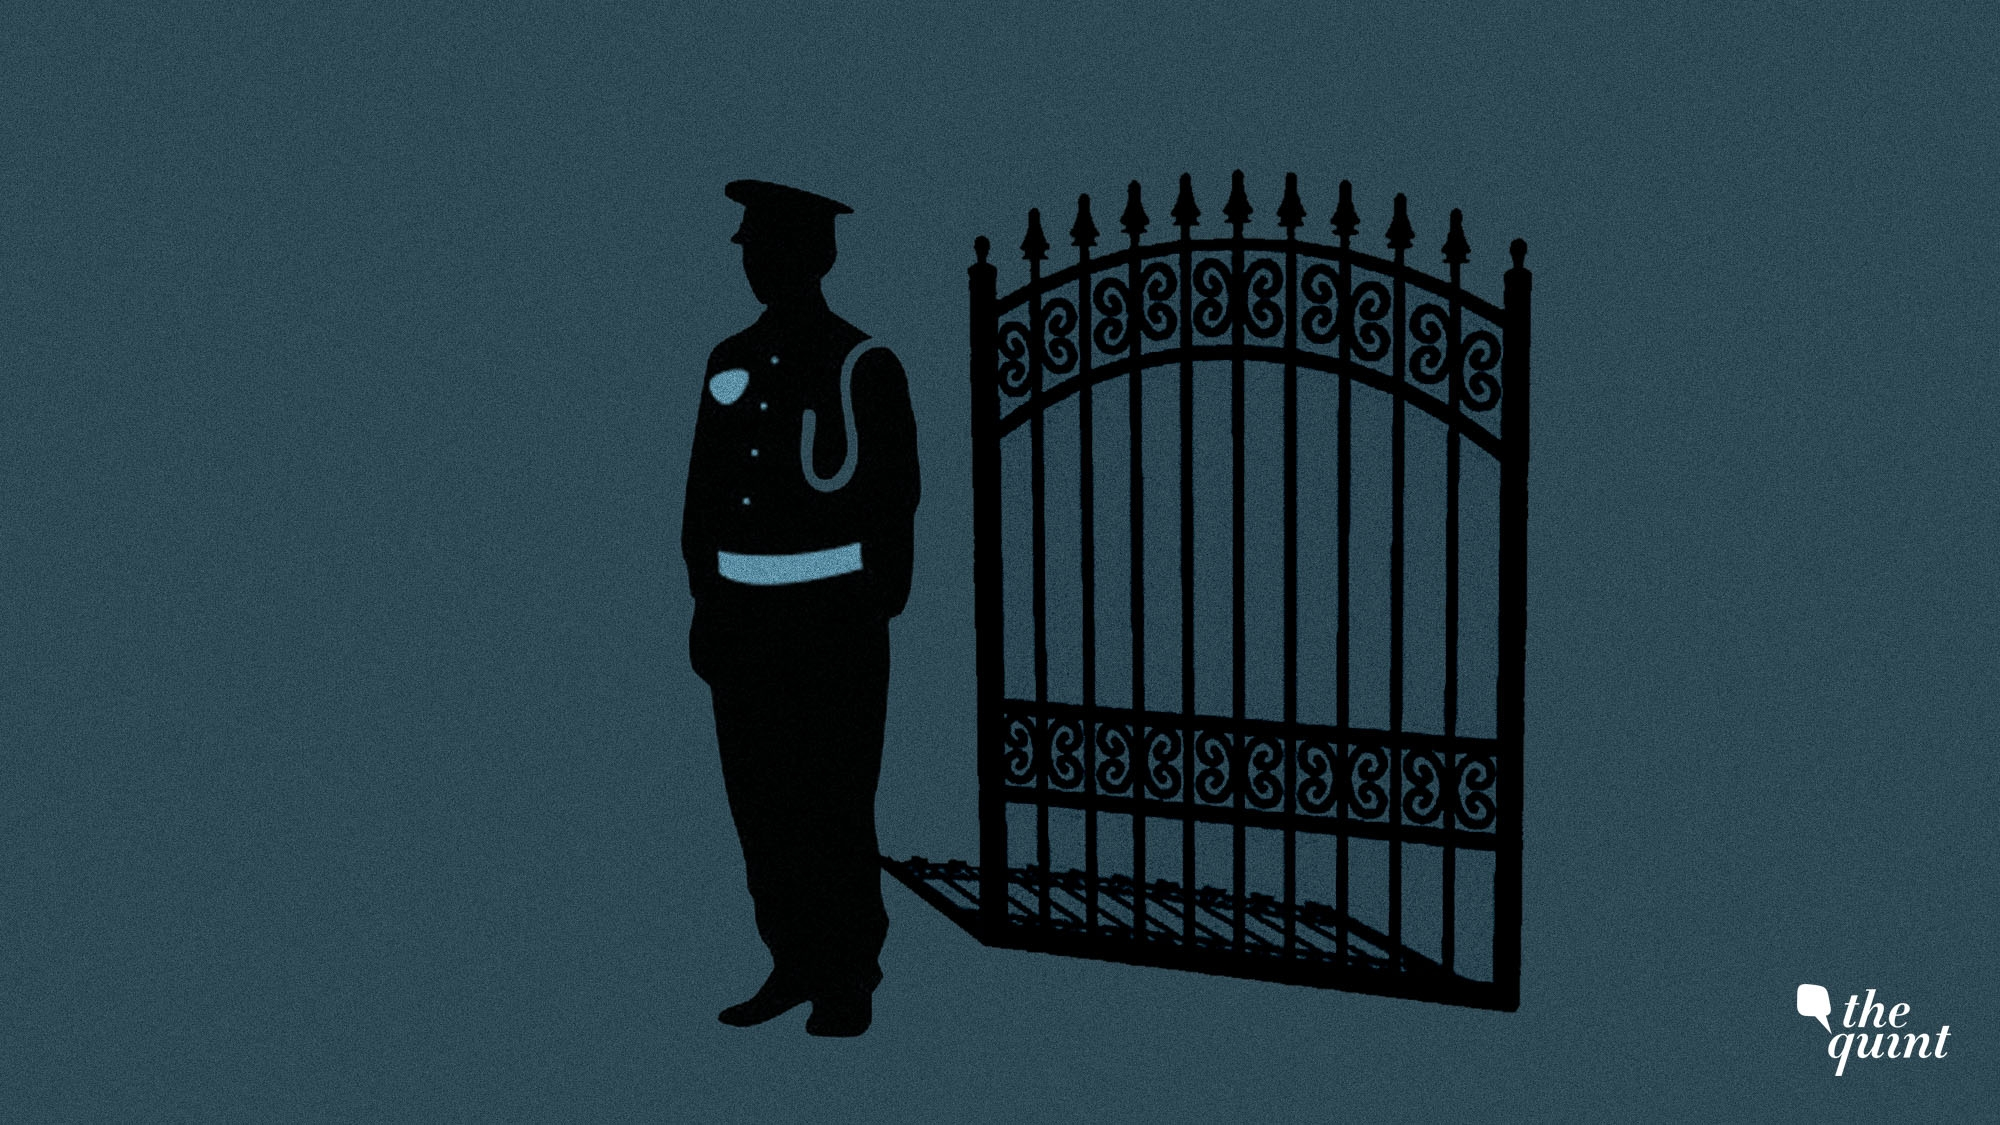 You Say Chowkidar Like It's a Bad Thing: Why Scorn Nepali Guards?